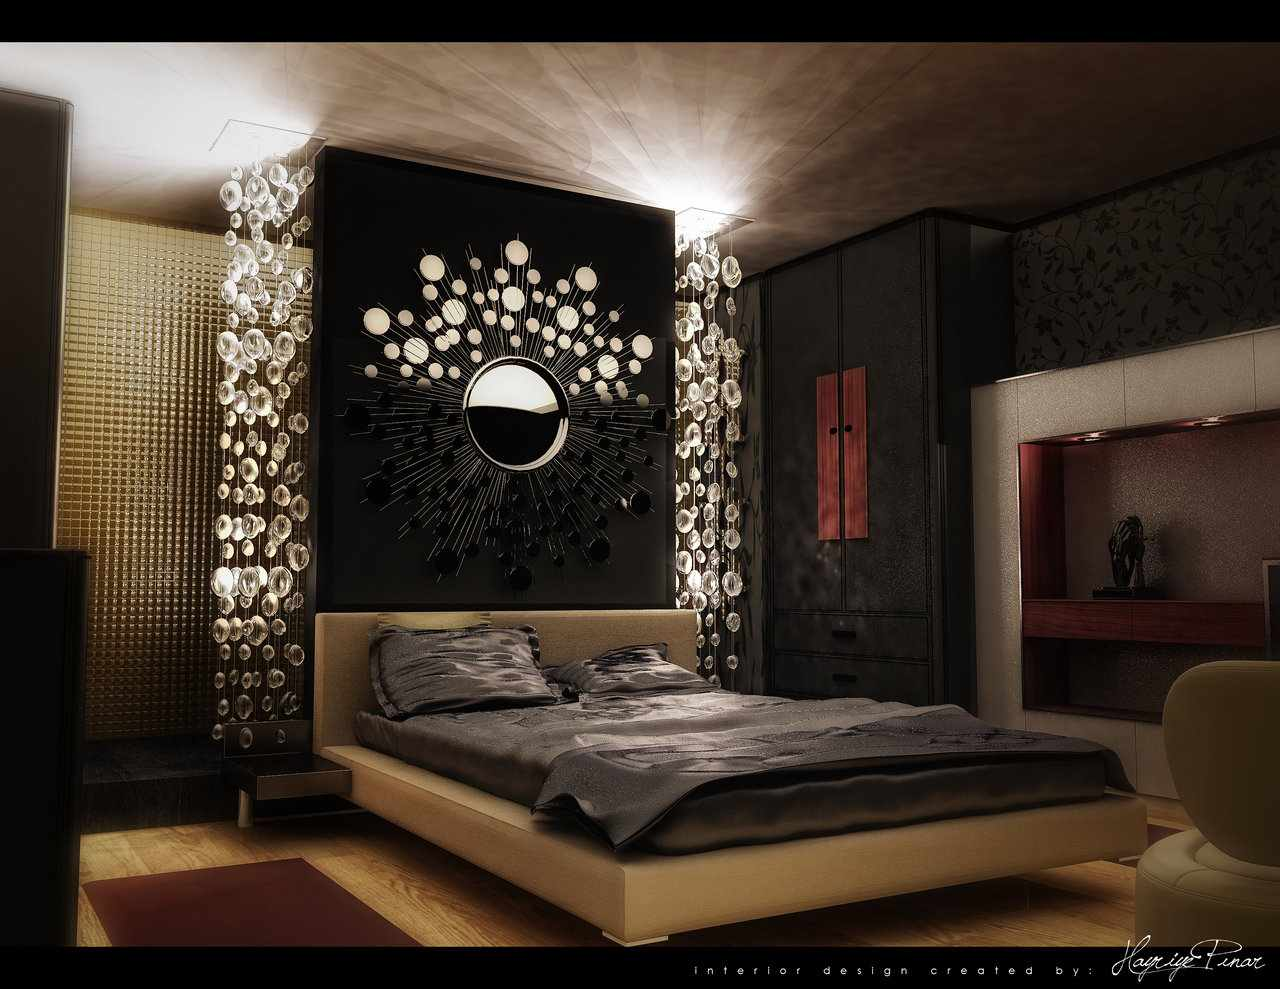 Ikea bedroom ideas ikea bedroom 2014 ideas for Bedroom look ideas